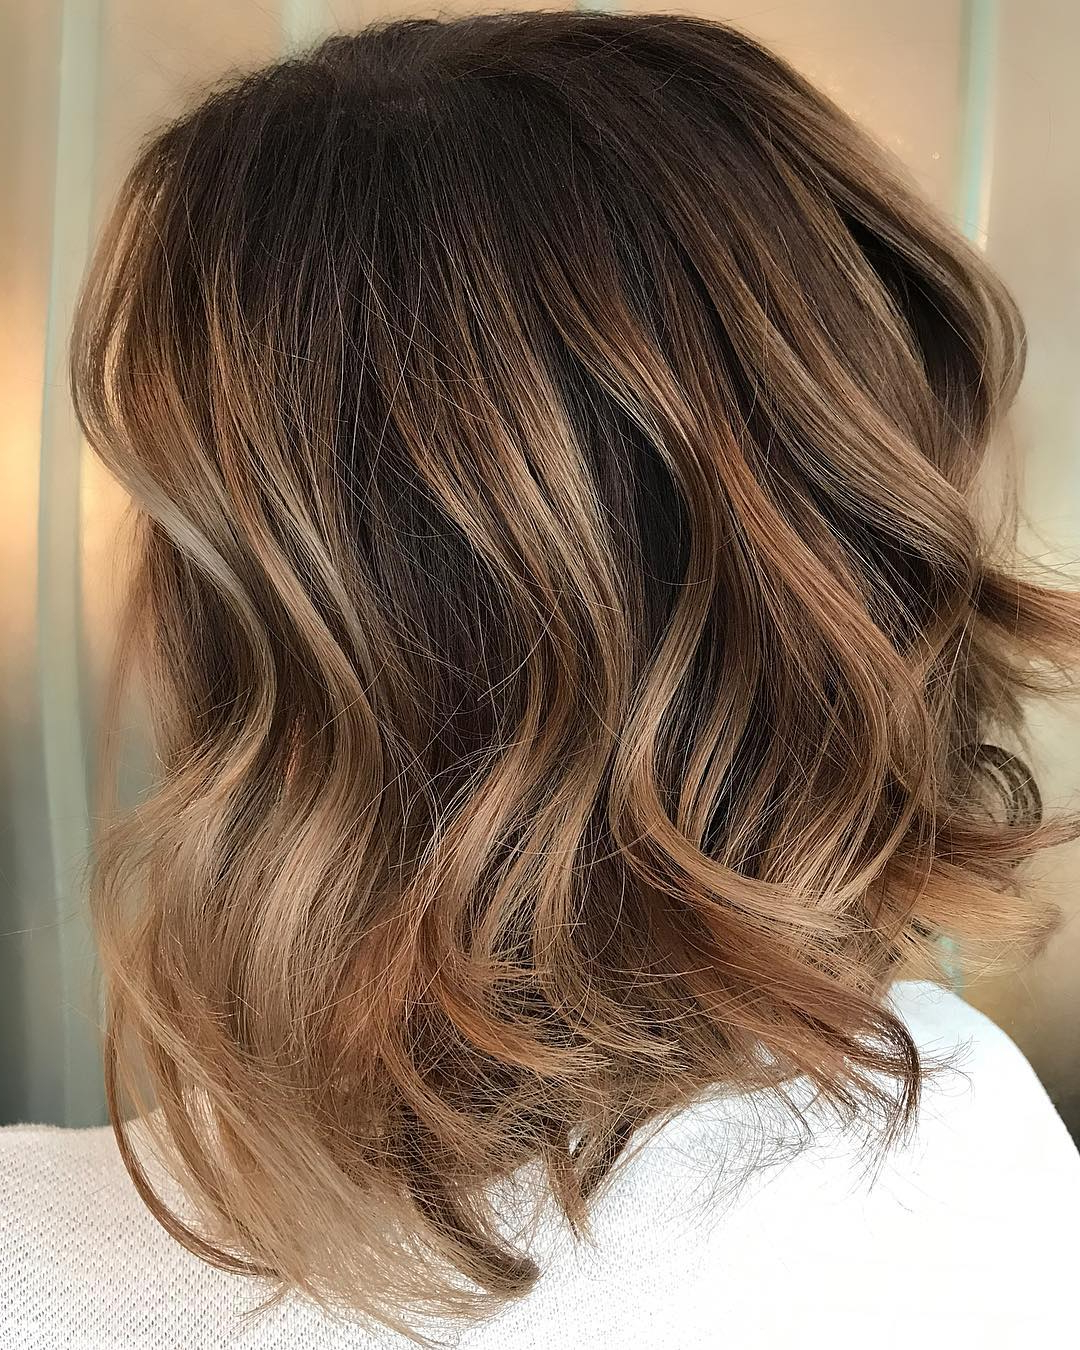 Newest Long Thick Black Hairstyles With Light Brown Balayage With Regard To 10 Trendy Brown Balayage Hairstyles For Medium Length Hair (View 19 of 20)